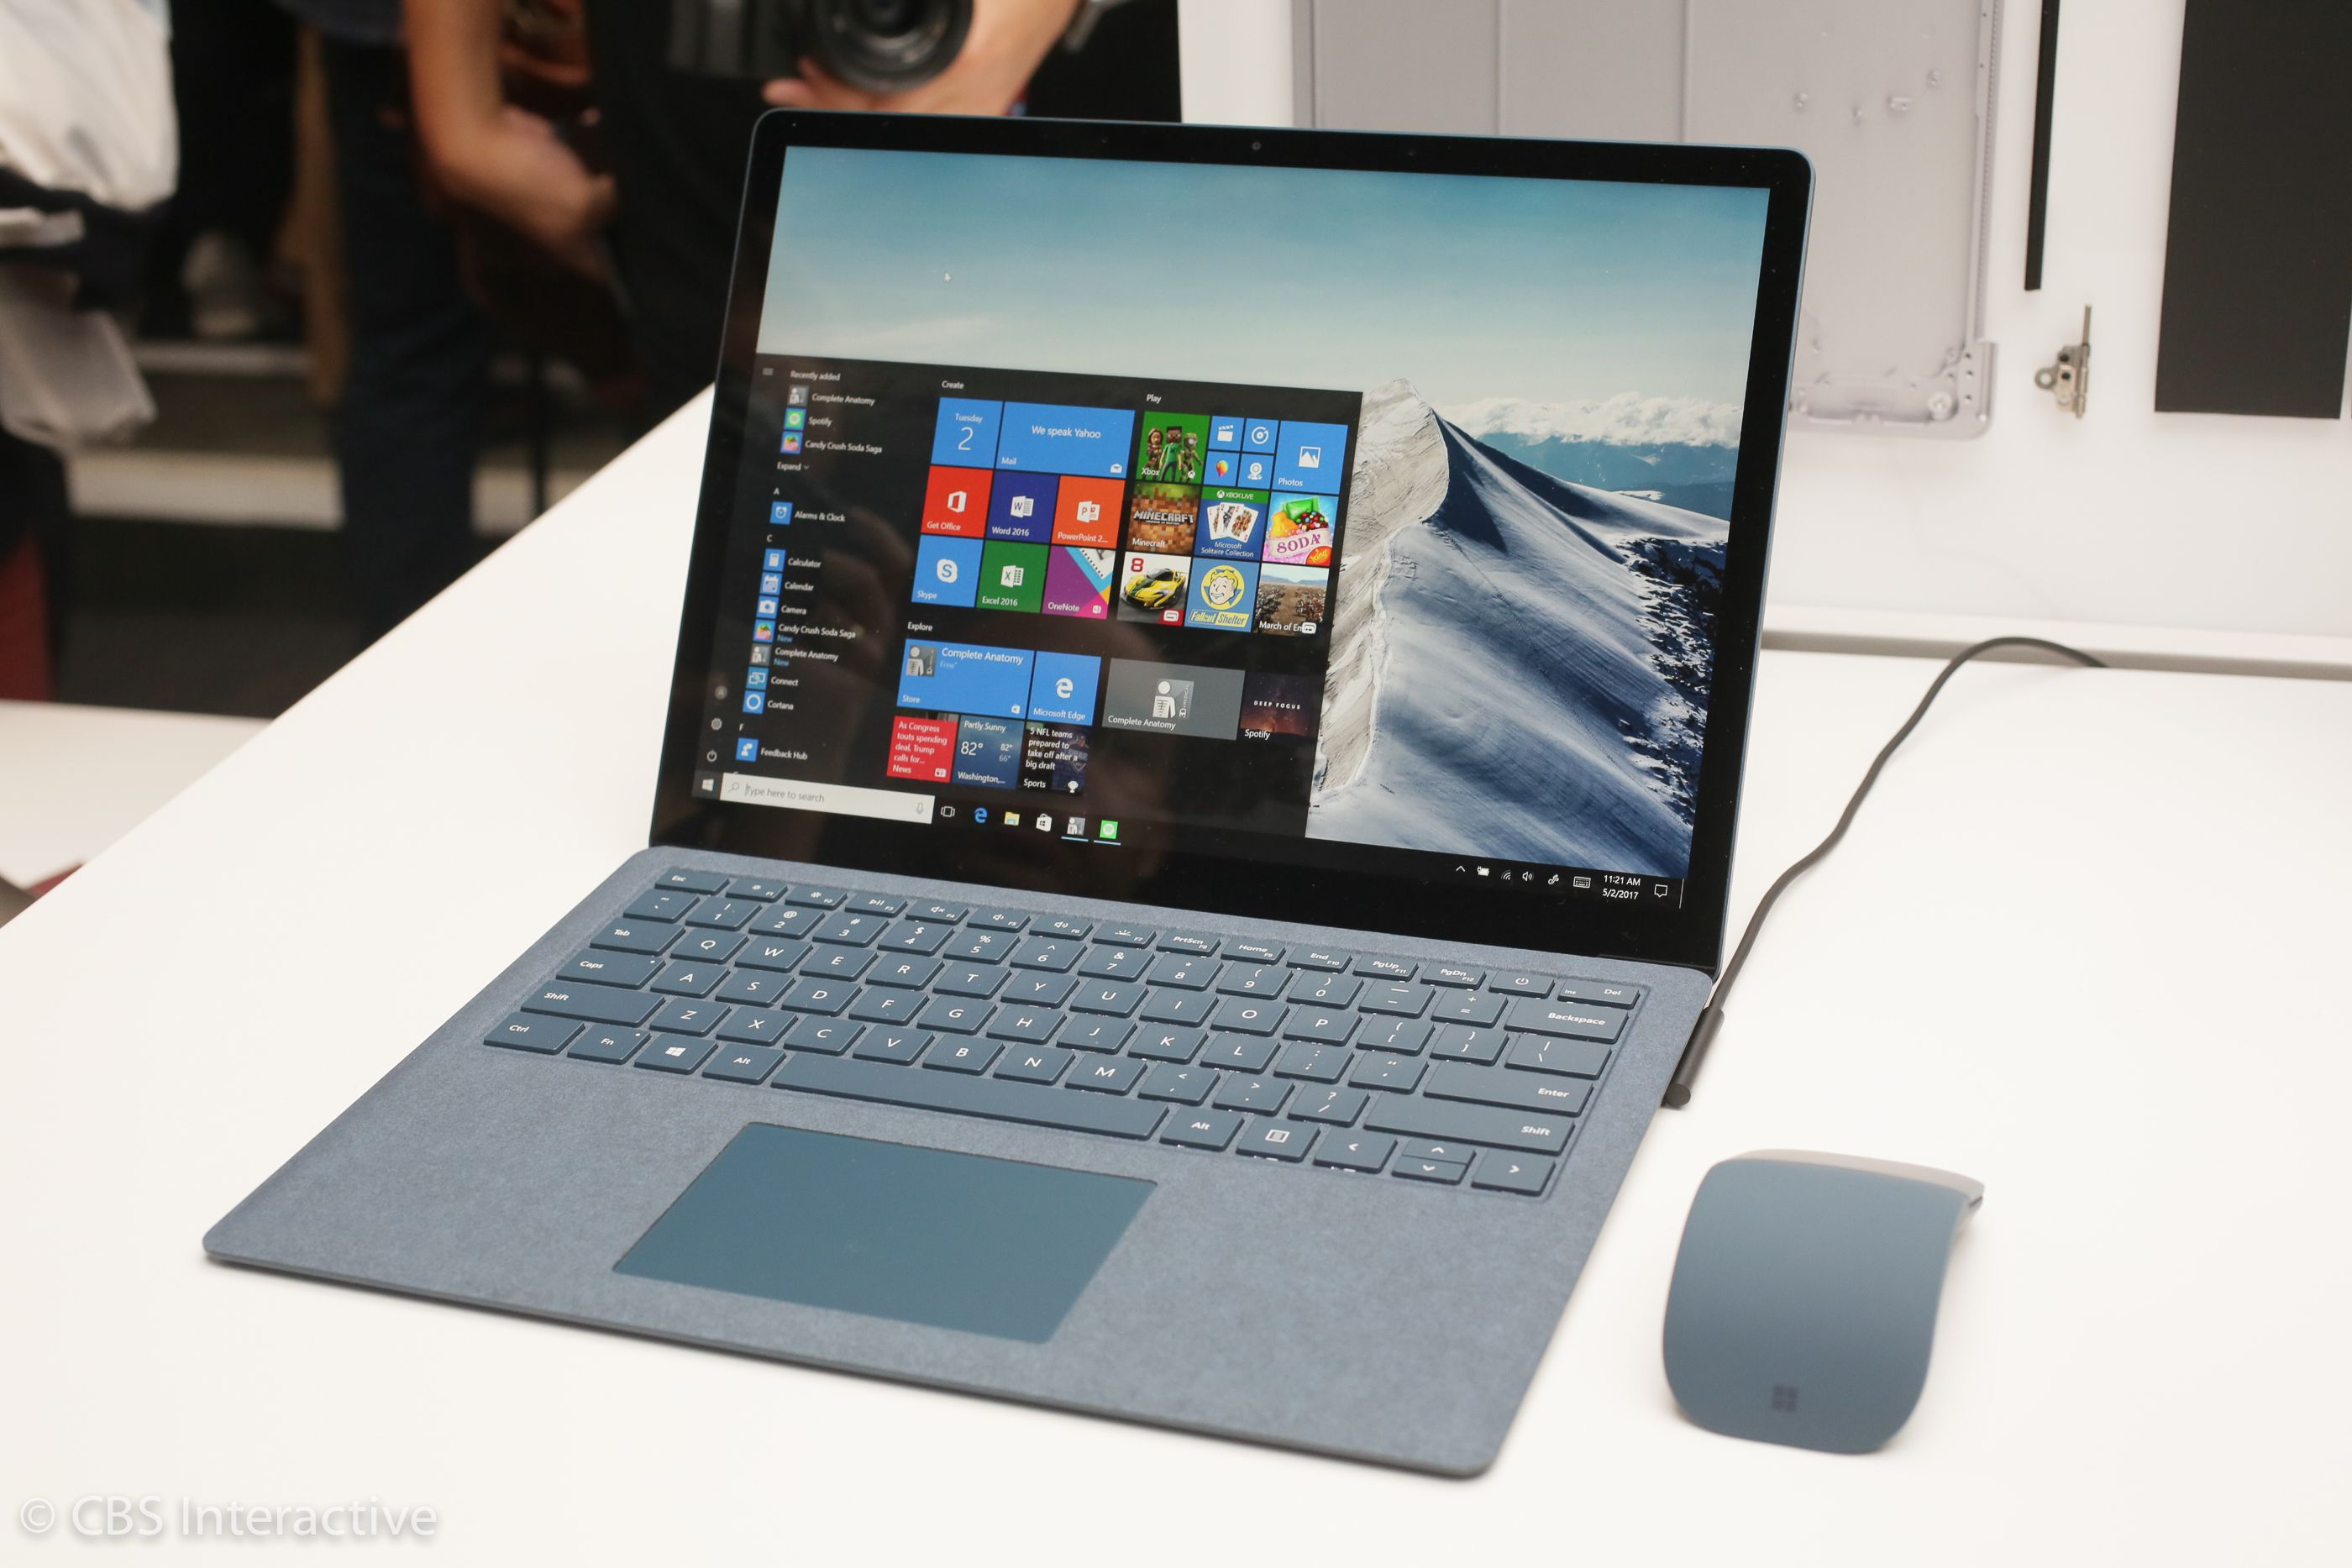 Новый SURFACE LAPTOP и лайт версия Windows 10 представлены компанией Microsoft